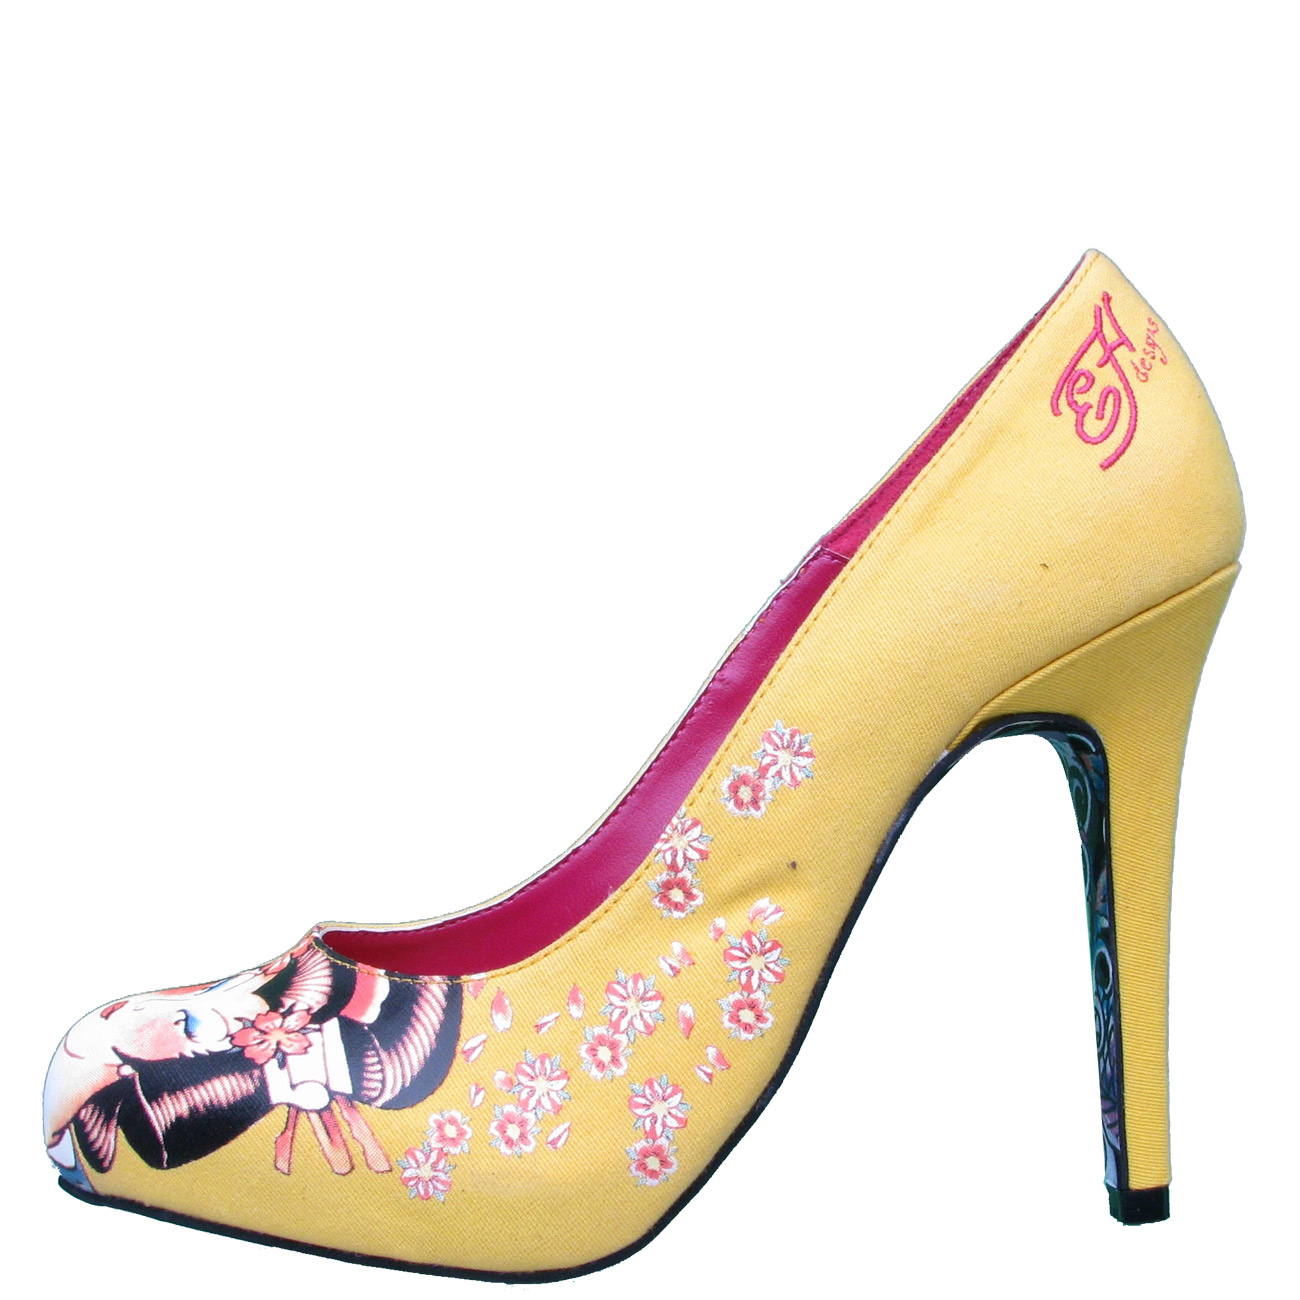 Ed Hardy Haute Geisha Pump Shoe for Women - Yellow